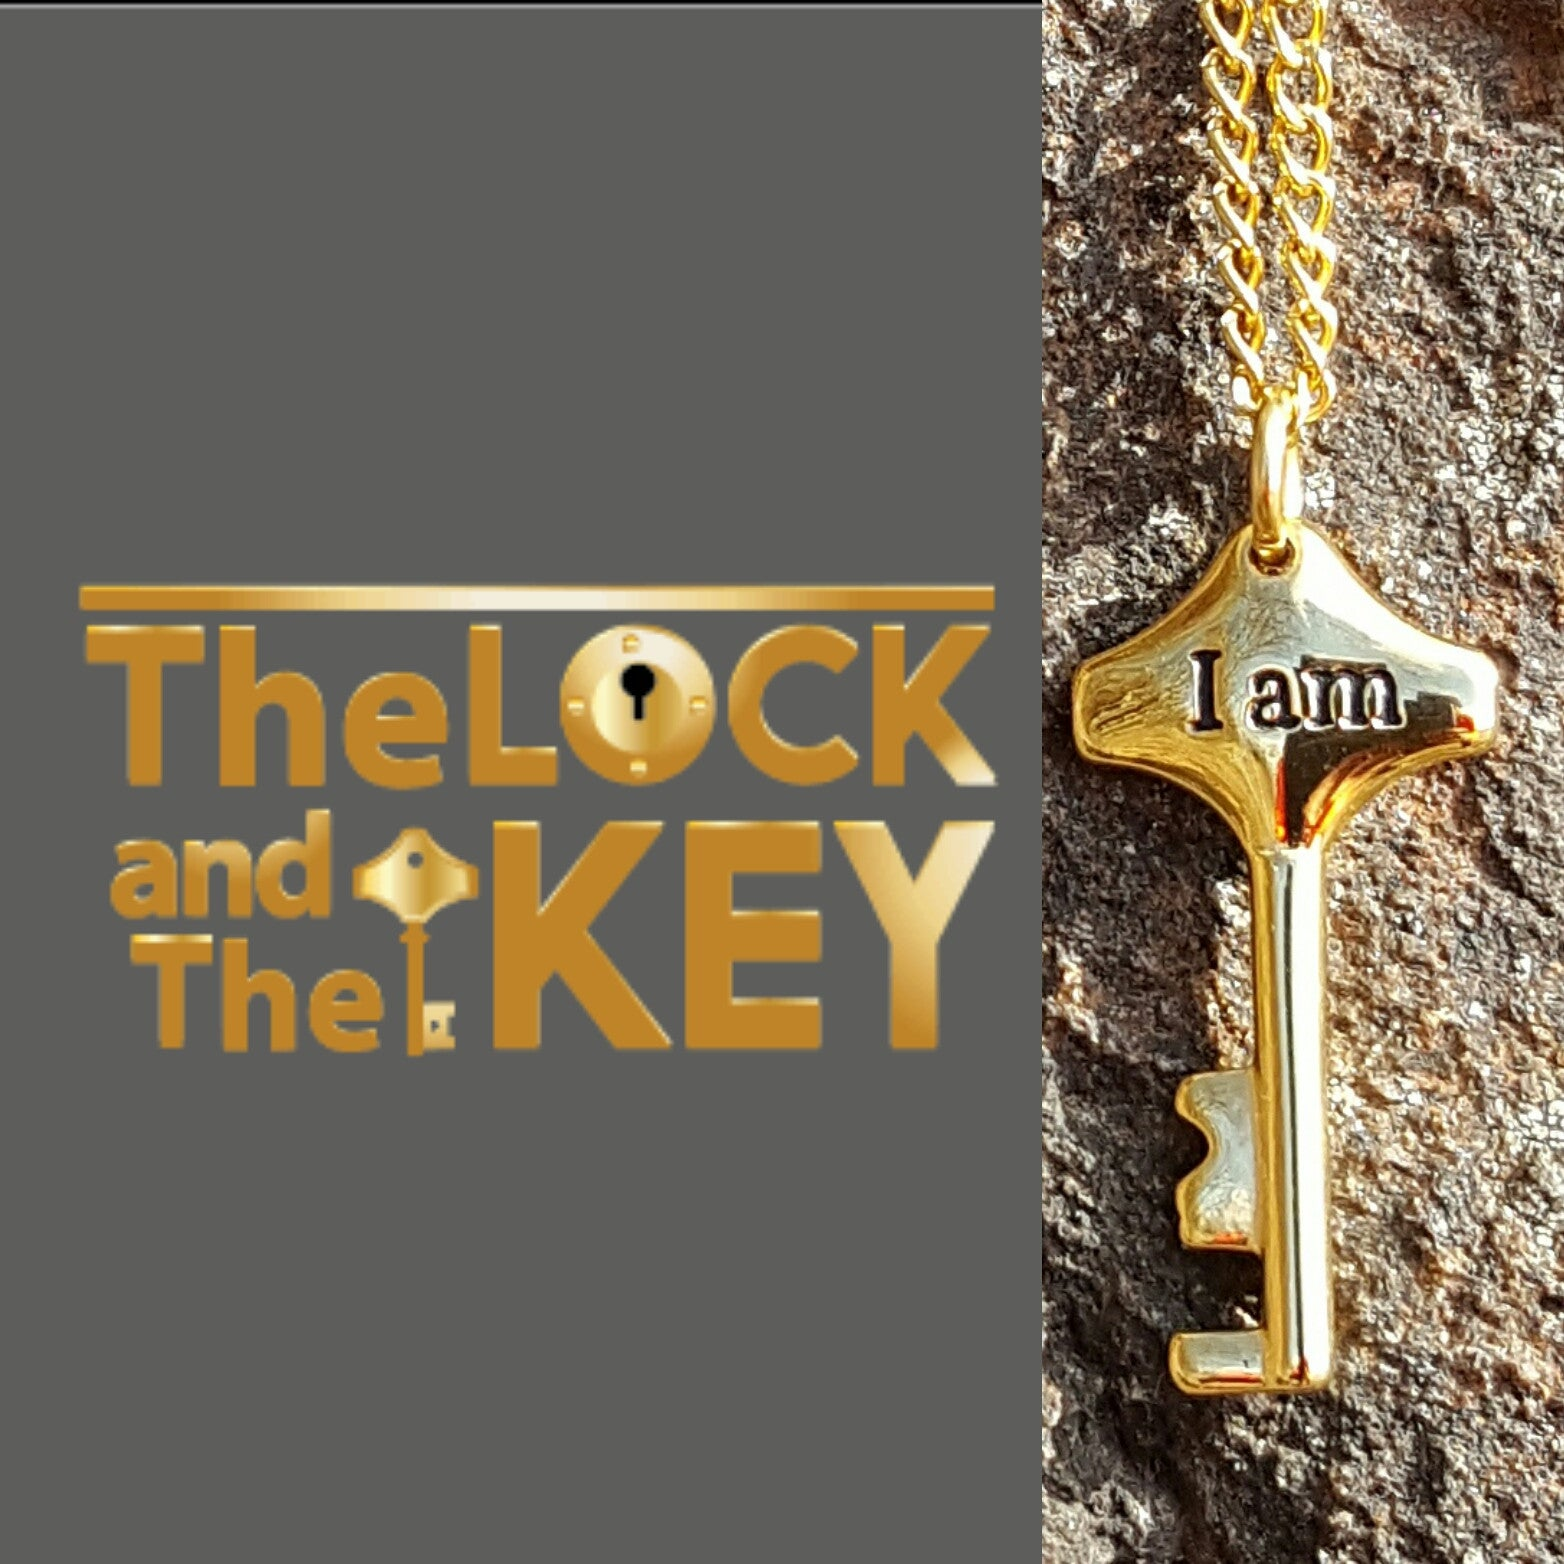 I am the key pendant - Infinite Reminders